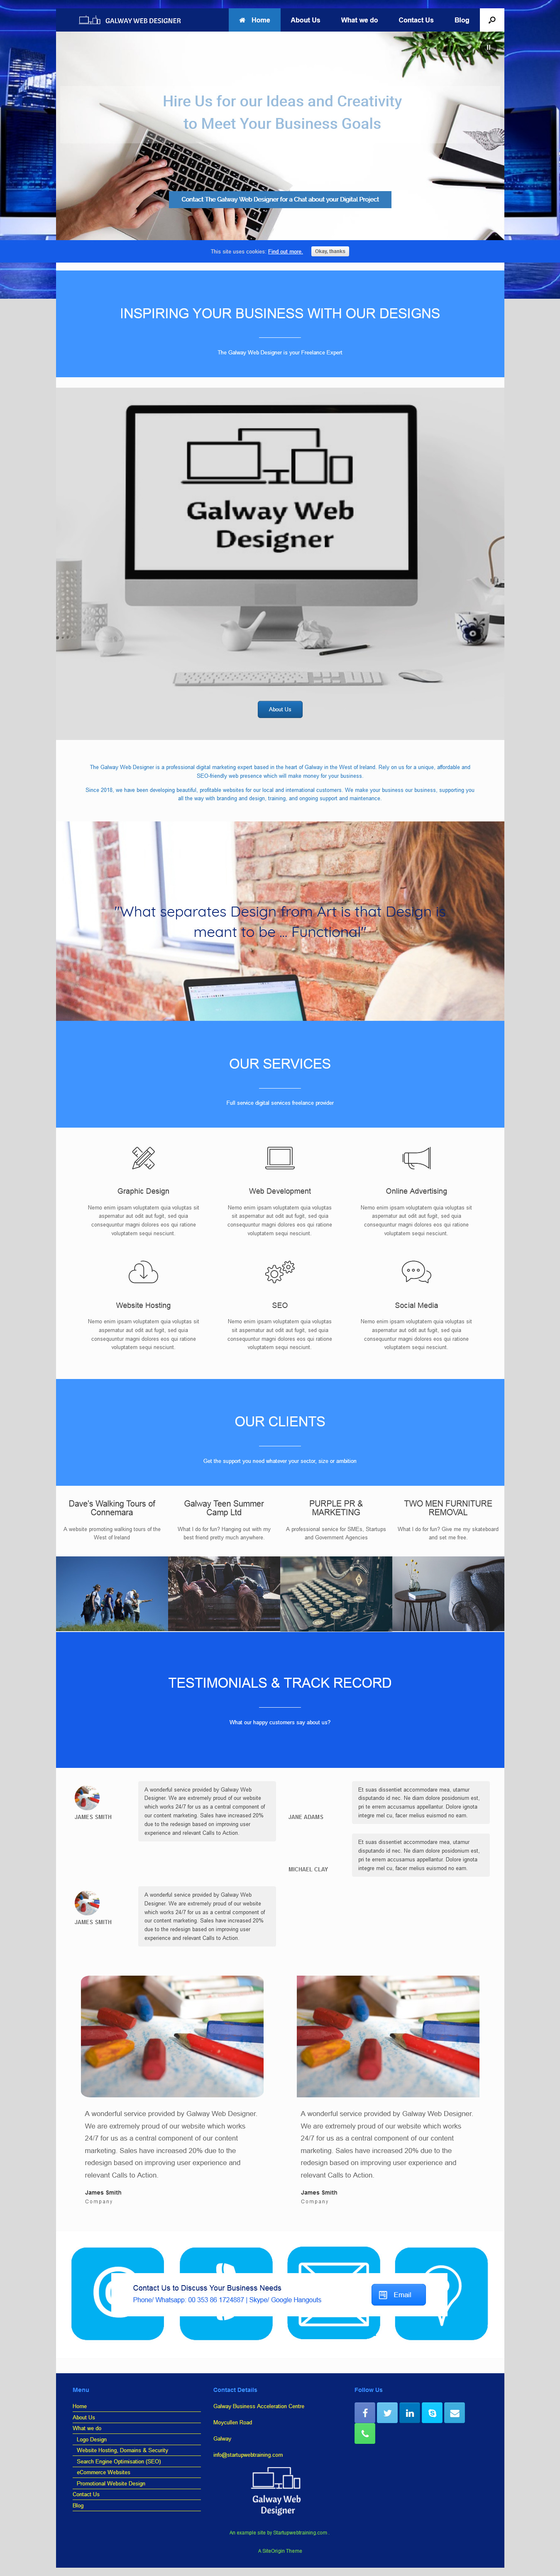 Vantage Theme with Site Origins Page Builder - An example Site with  Instructions - Startup Web Training